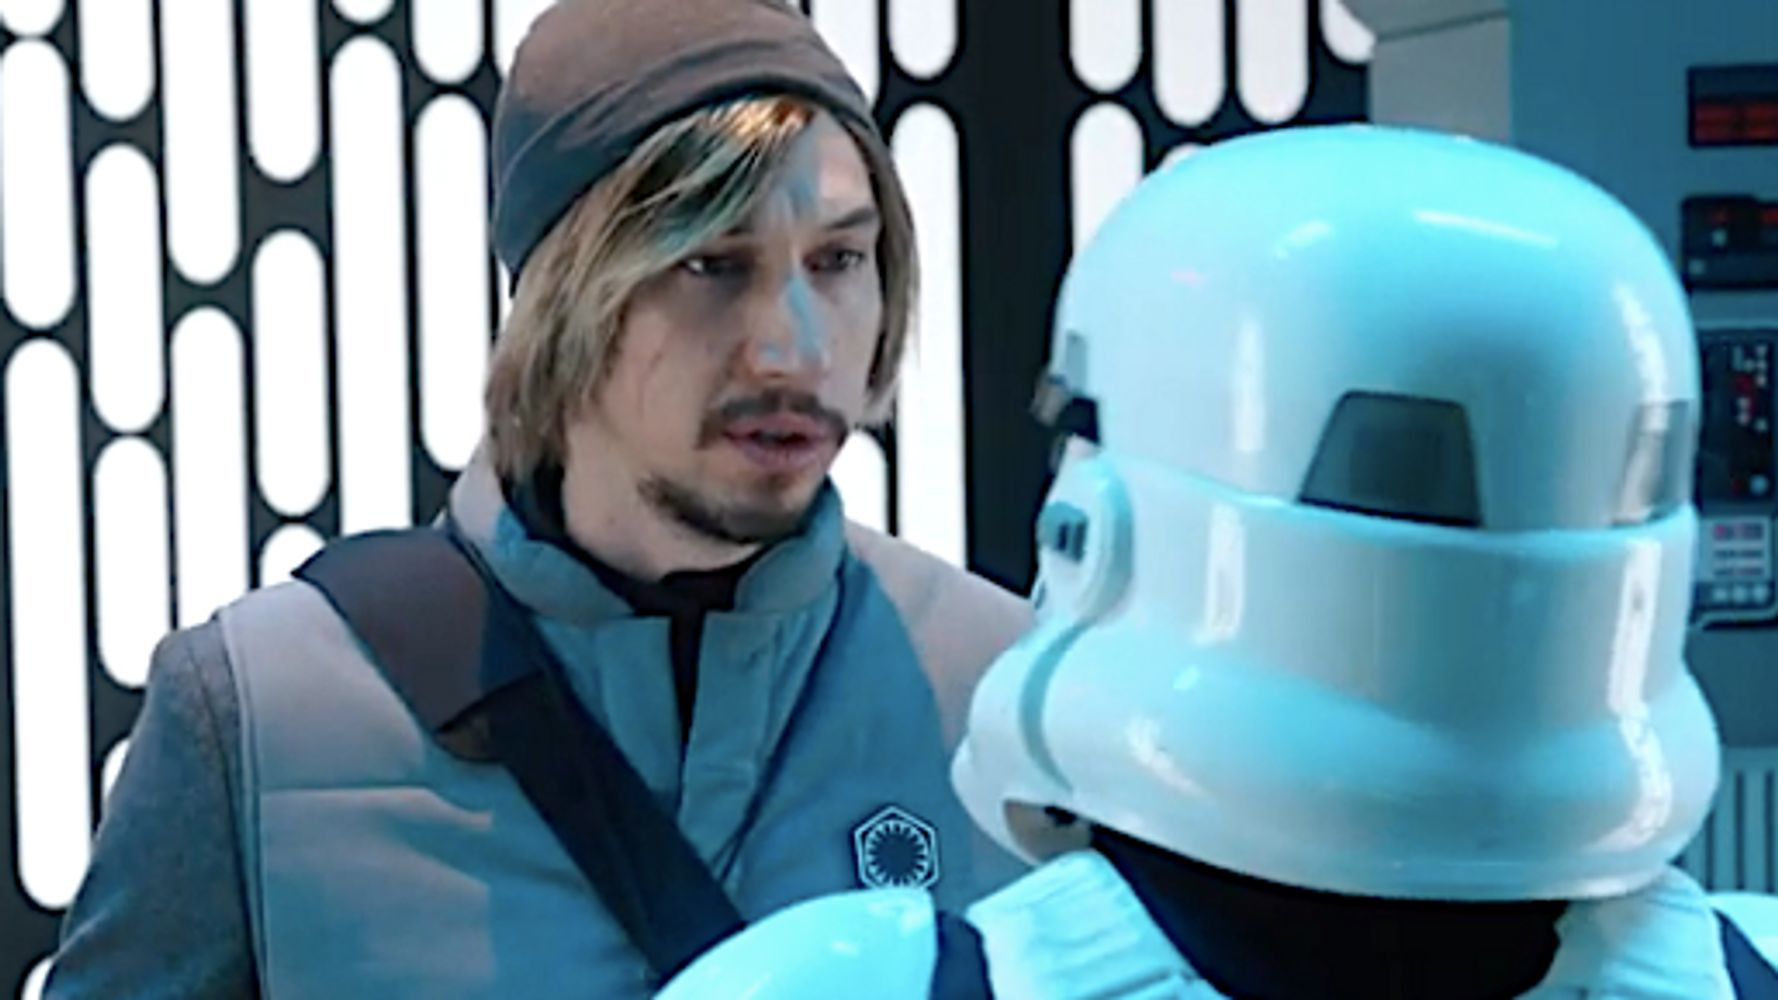 Westlake Legal Group 5e2d43691f00002e008580a6 Adam Driver's Kylo Ren Goes Undercover As Nerdy Intern On 'Saturday Night Live'